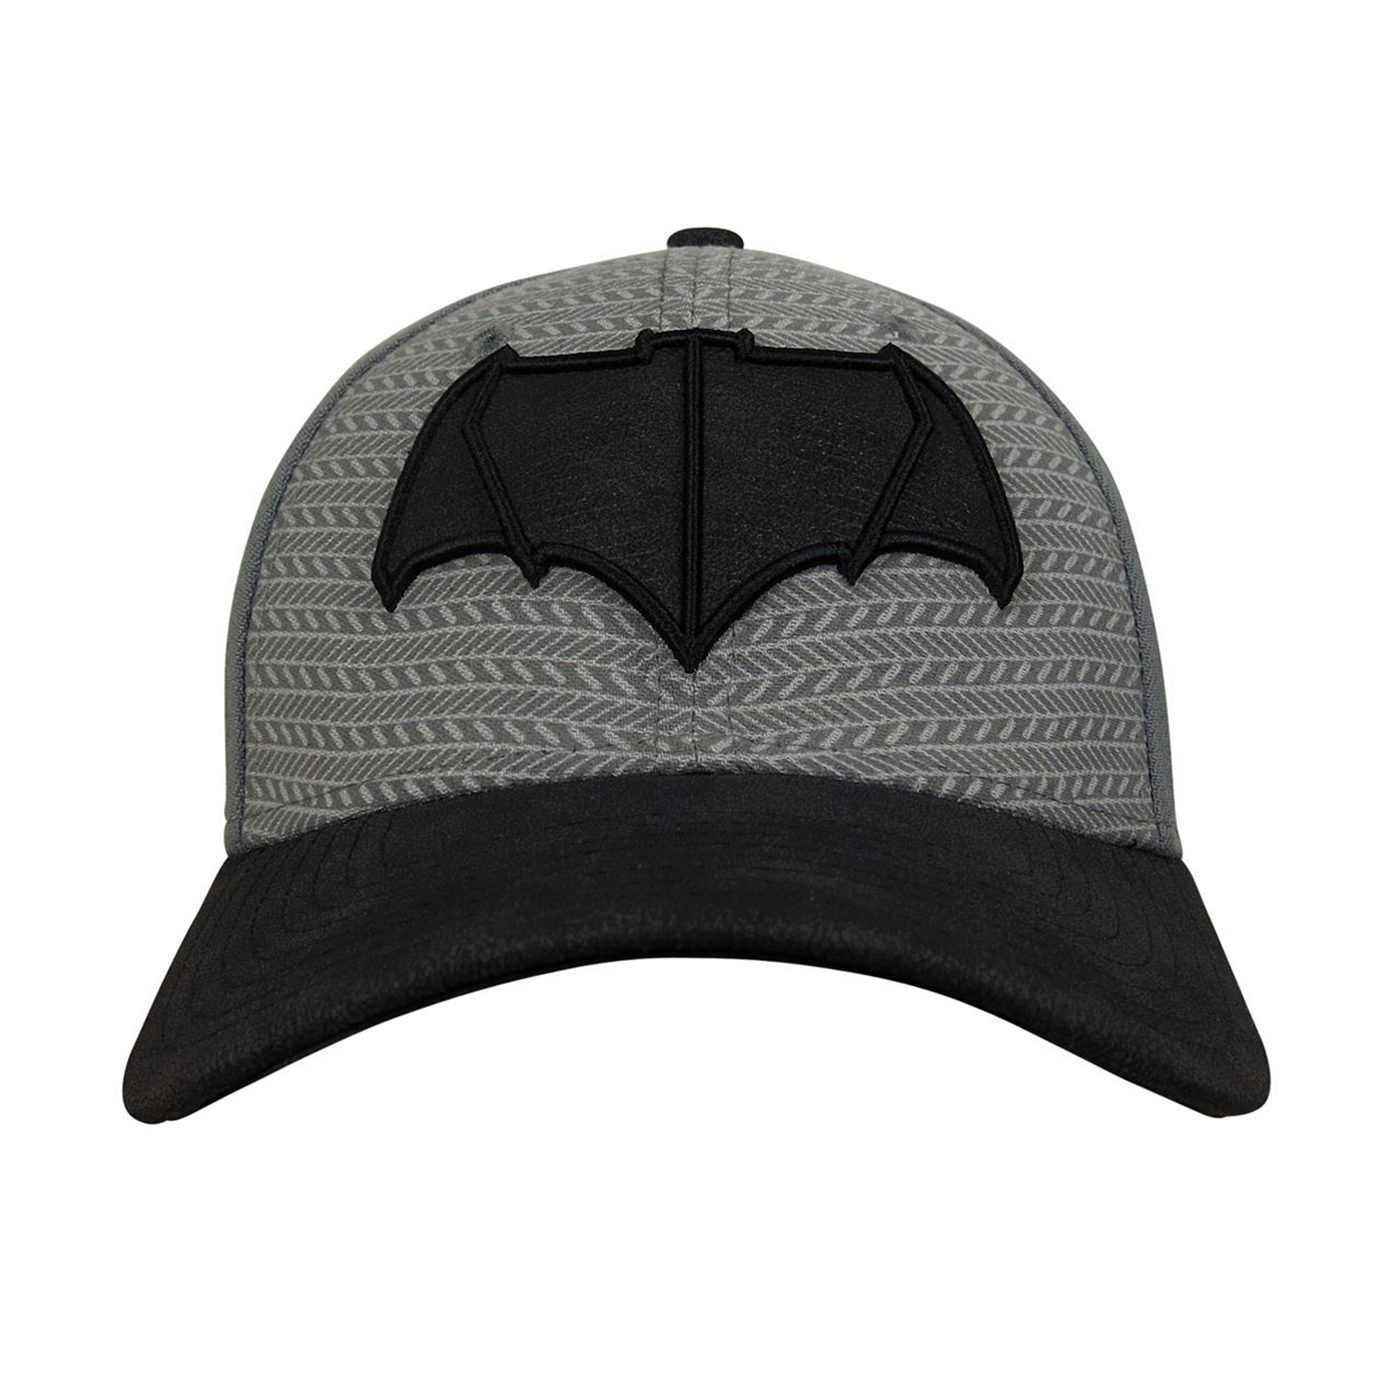 Batman Vs Superman Bat Symbol New Era 39Thirty Flex Fitted Hat